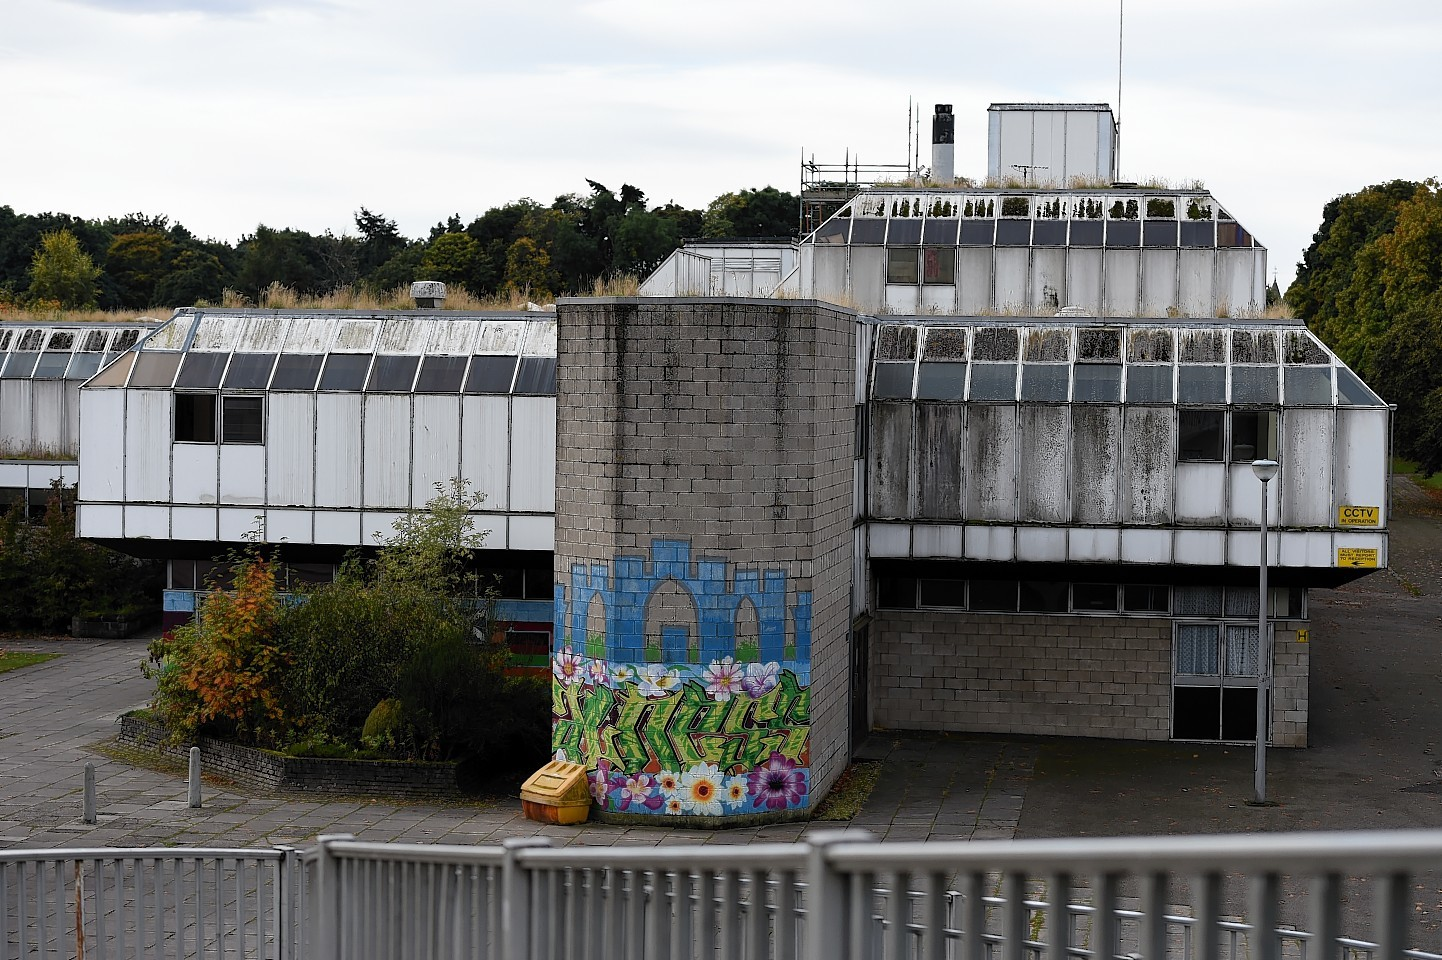 Alness Academy showing disrepair and growth of weeds and plants on the building.